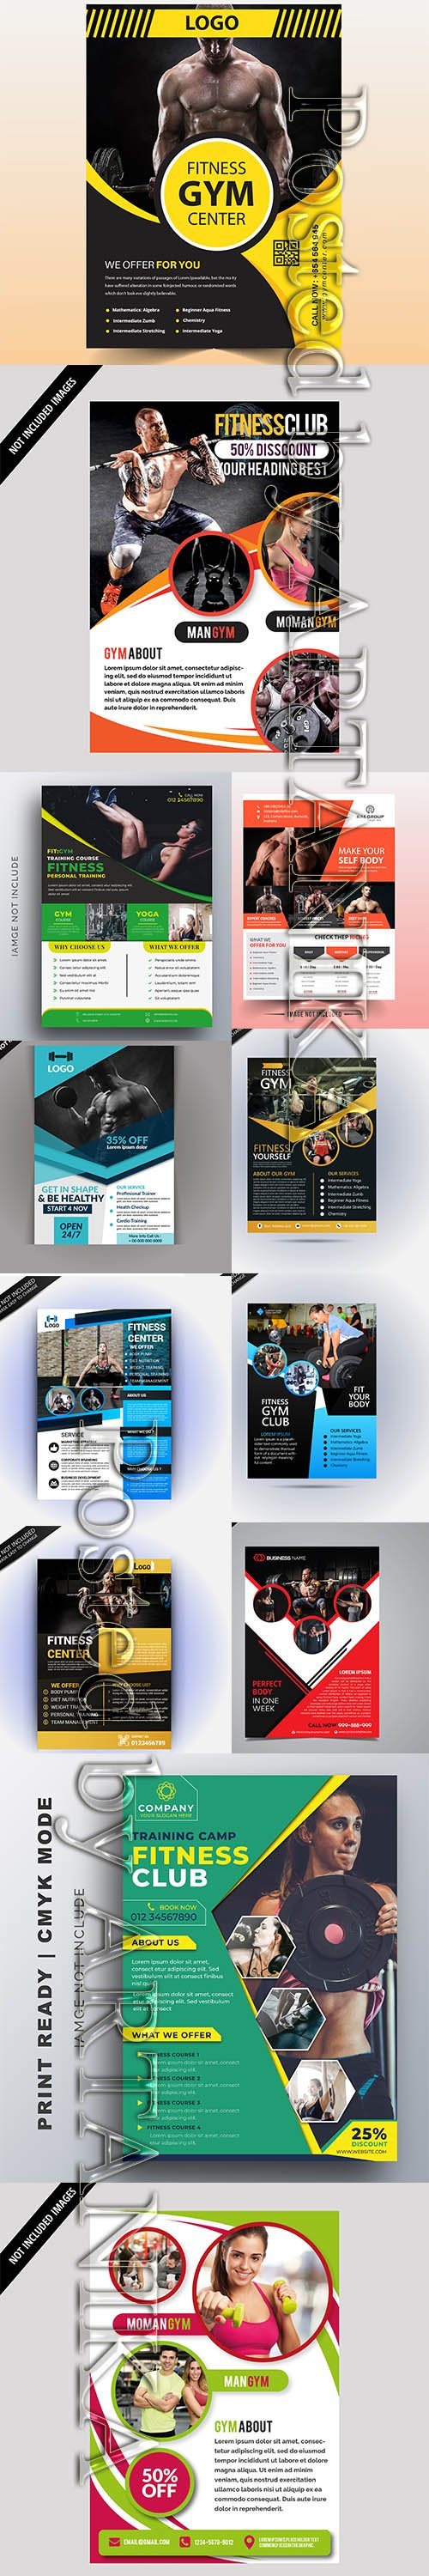 Modern Gym Flyer and Fitness Social Media Post Template Vol 19